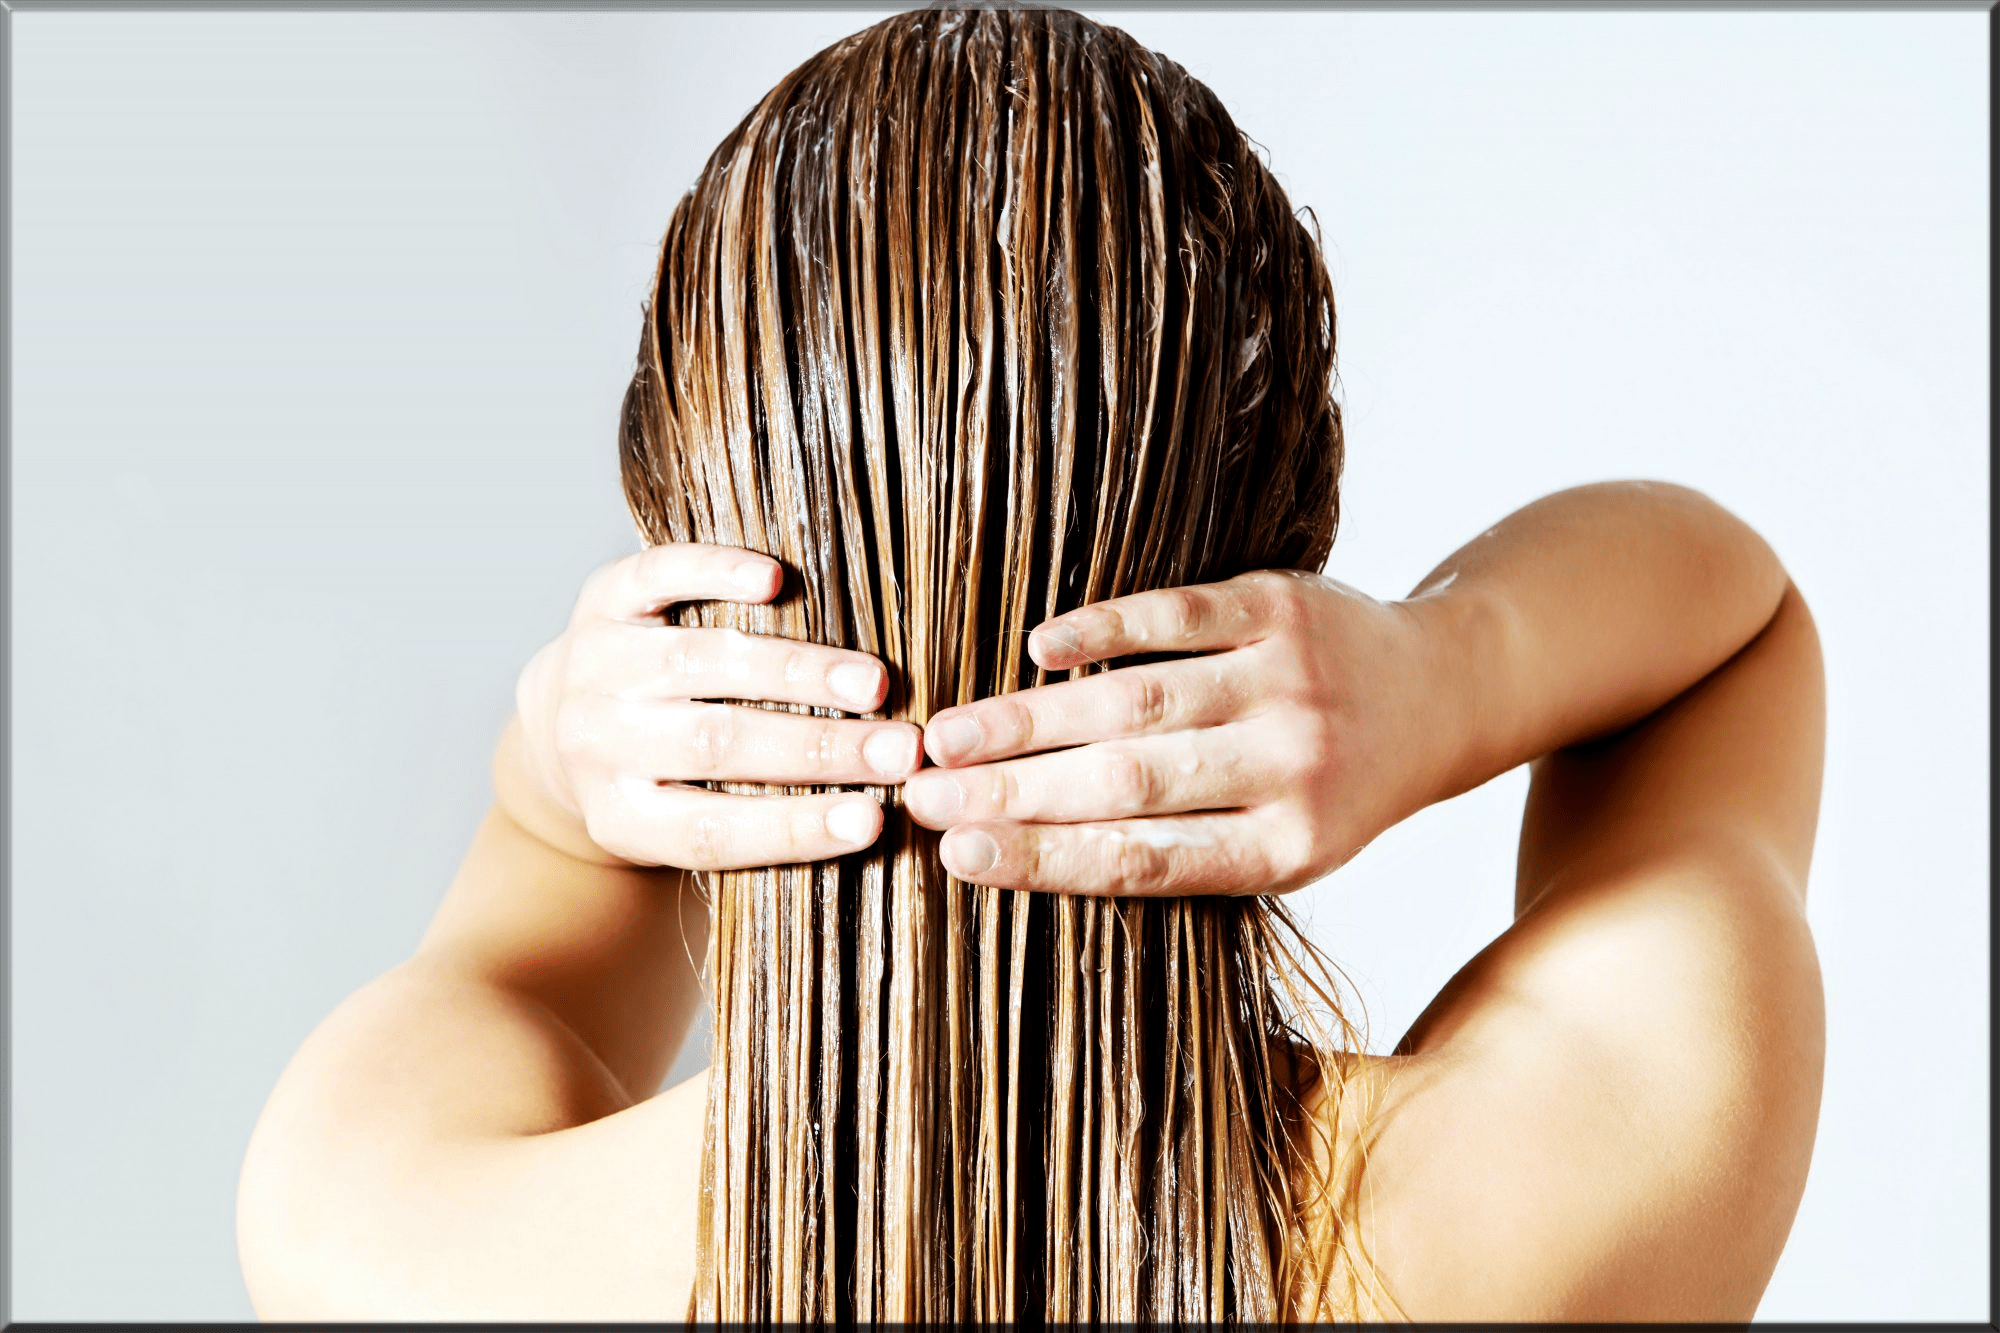 Use Any Conditioner after washing